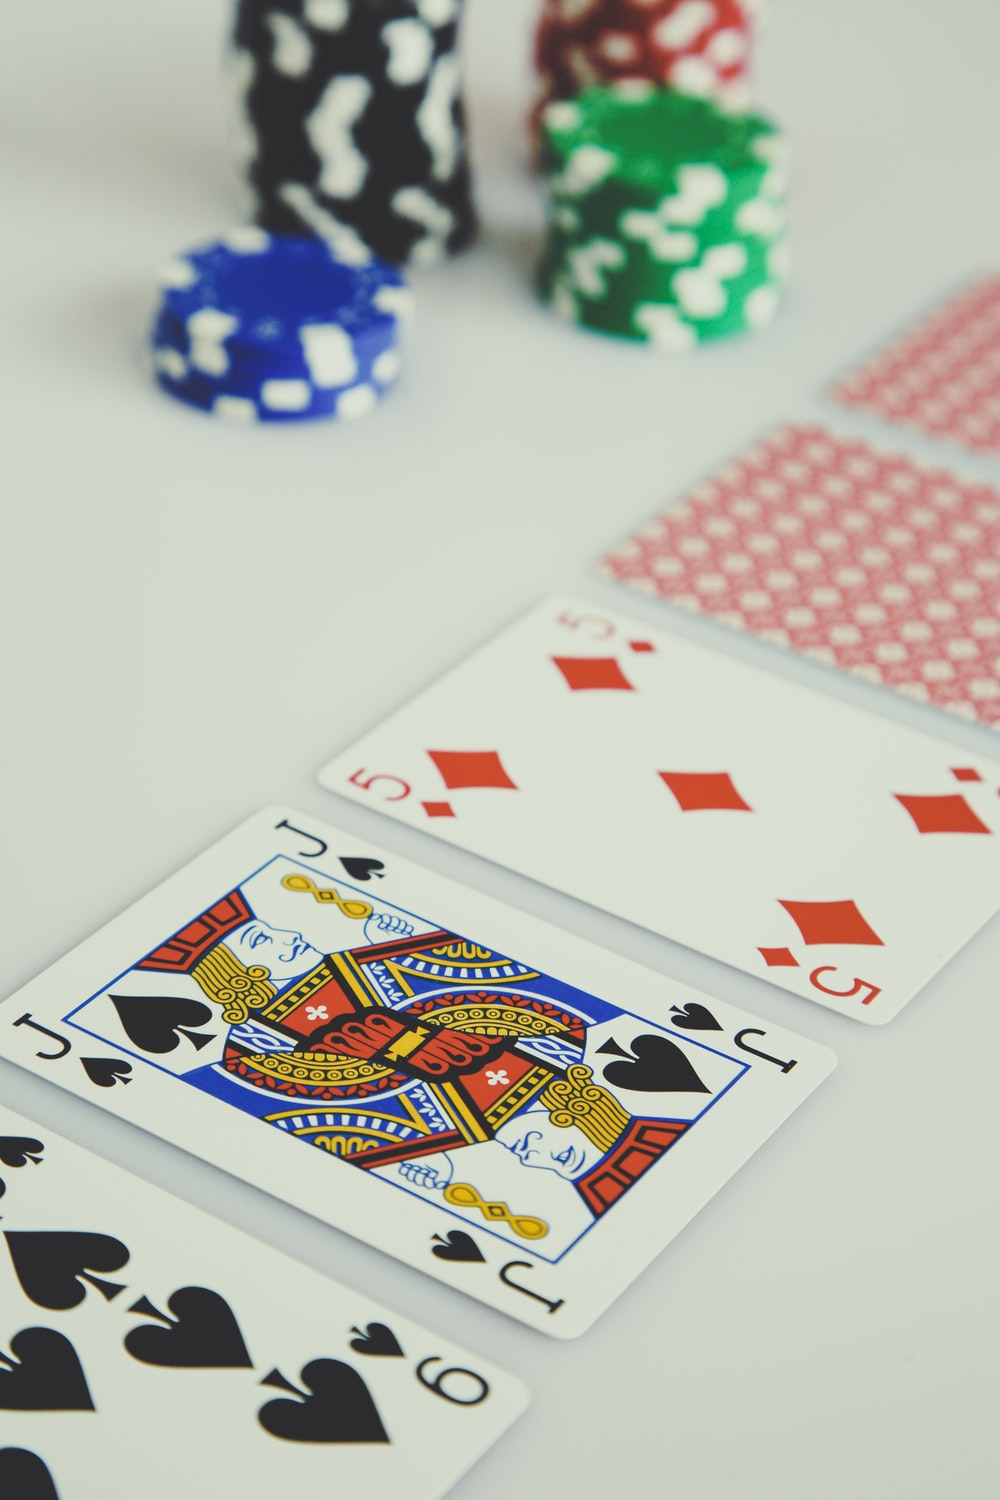 assorted playing cards on white surface